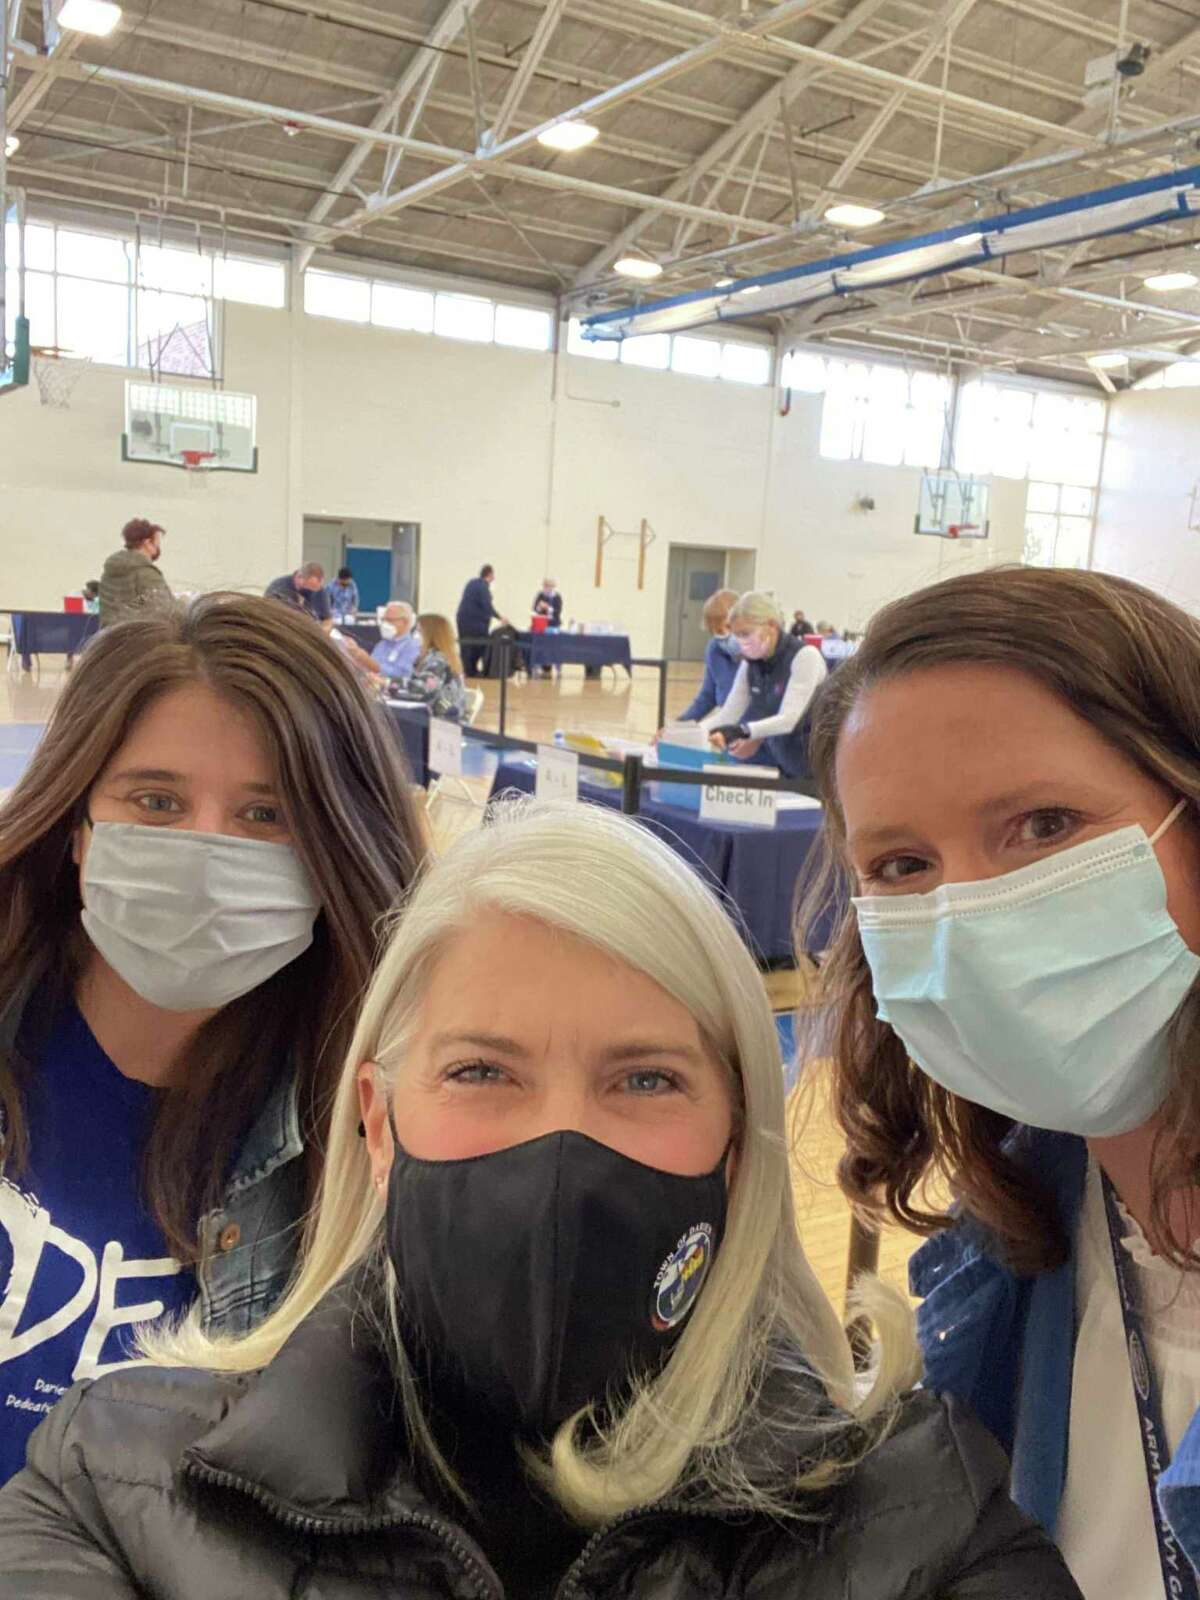 First Selectman Jayme Stevenson, center, at the Darien teachers' vaccination clinic, with Darien teachers union president Joslyn DeLancey, left, and with Alicia Casucci, head of nursing for the schools.